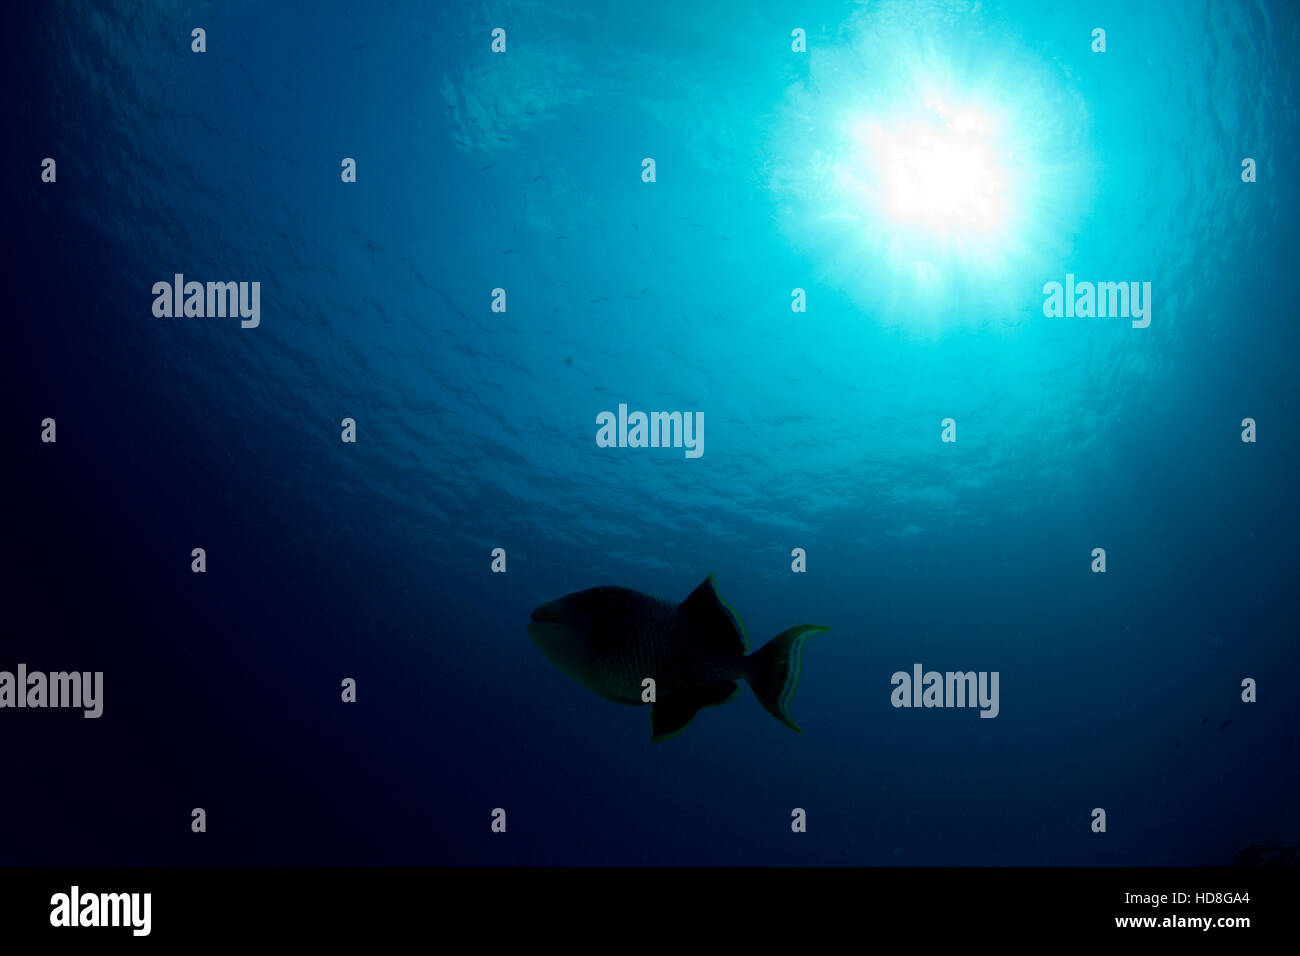 Blue water triggerfish silhouette under the sun. - Stock Image